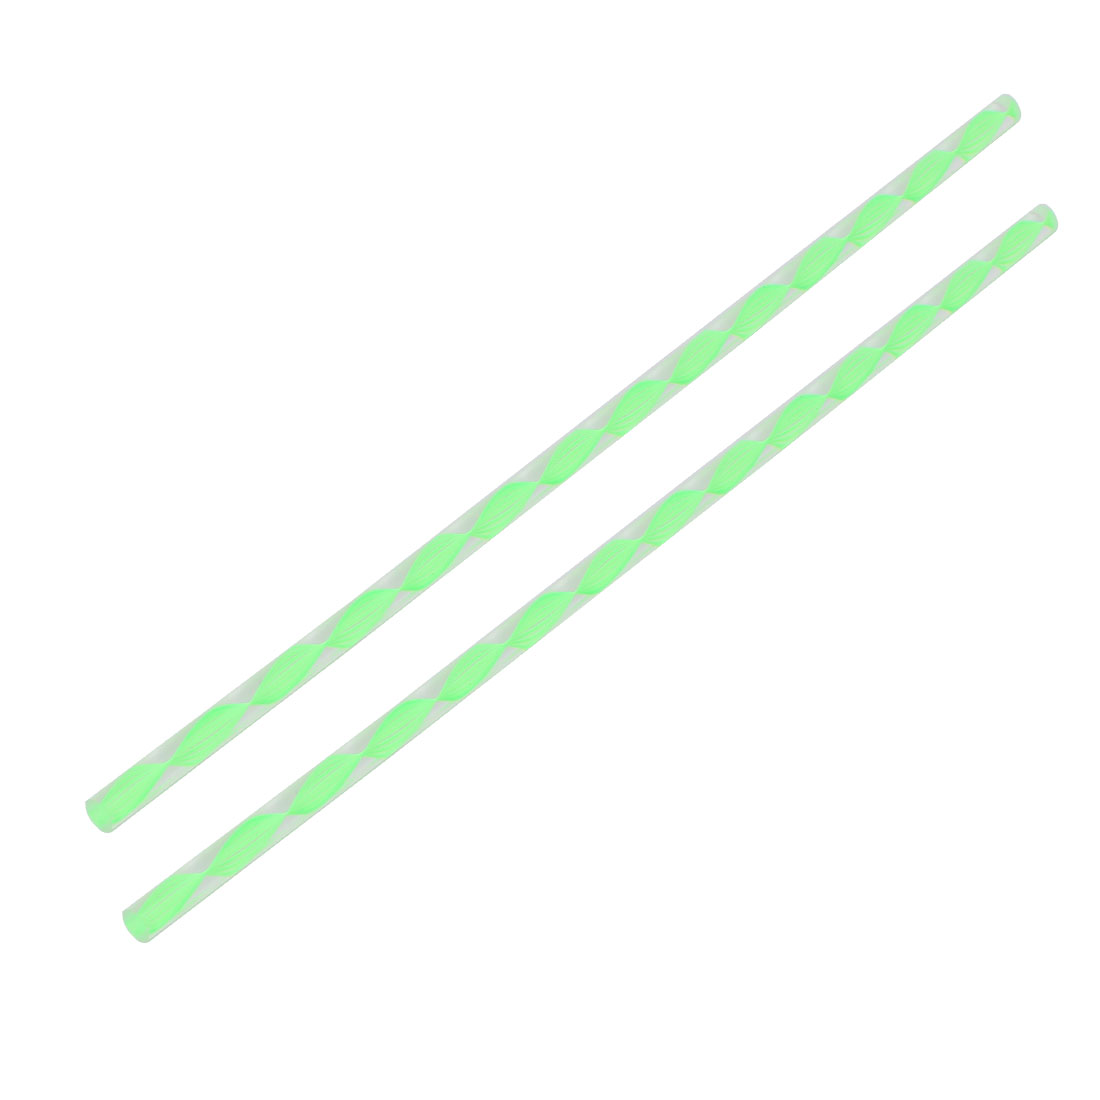 Twisted Green Line Solid Acrylic Round Rod PMMA Bar 250mmx6mm 2pcs